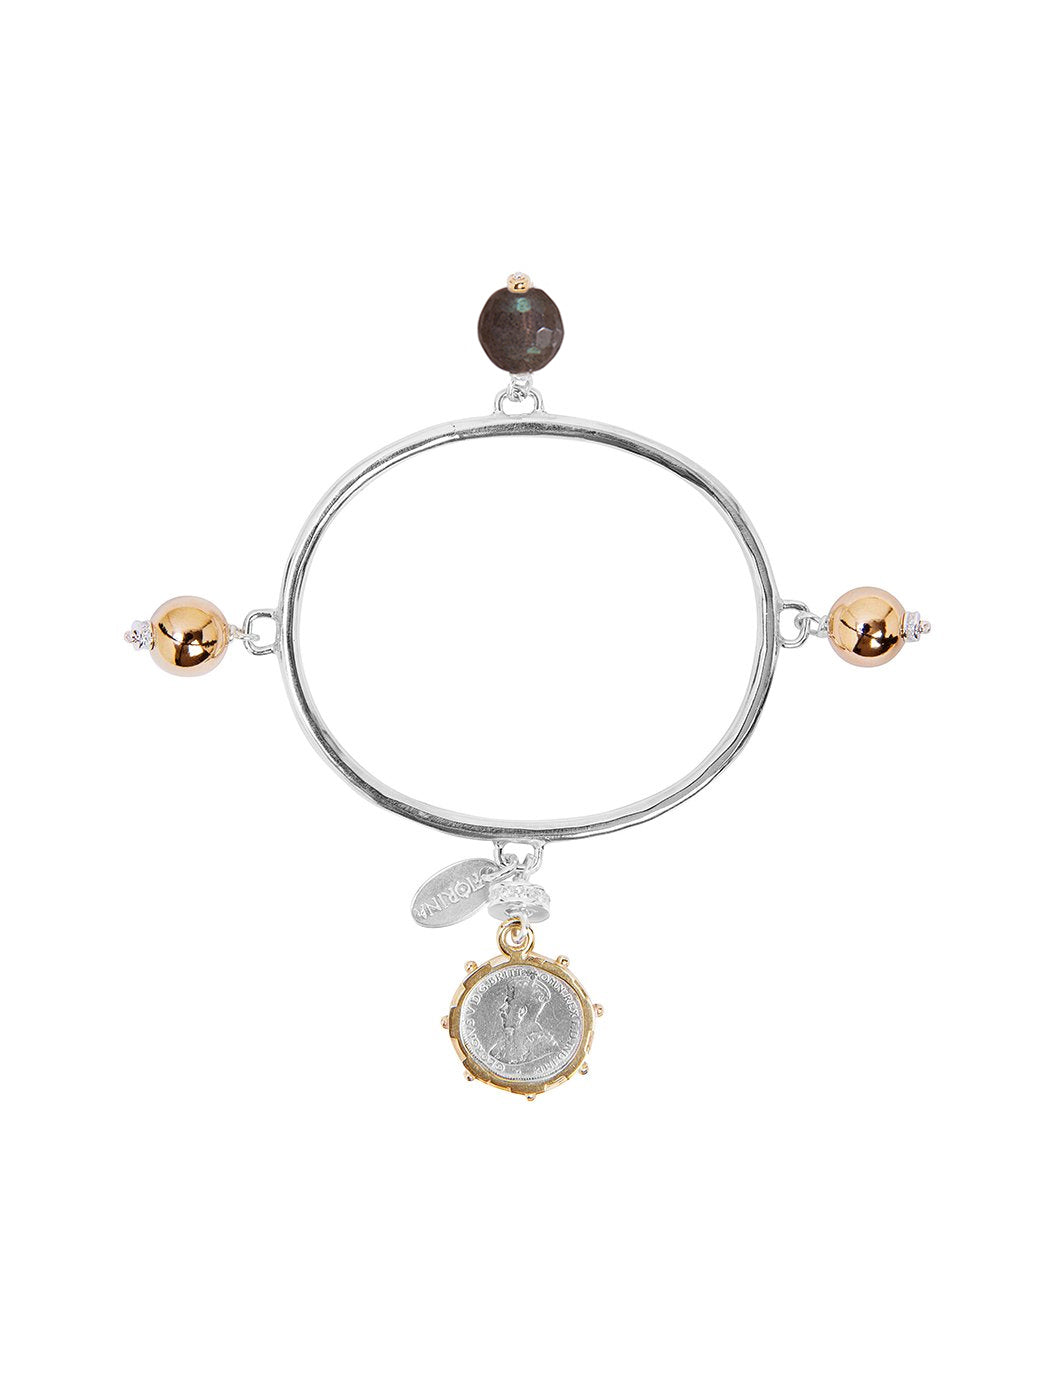 Fiorina Jewellery Vivaldi Bangle Labradorite